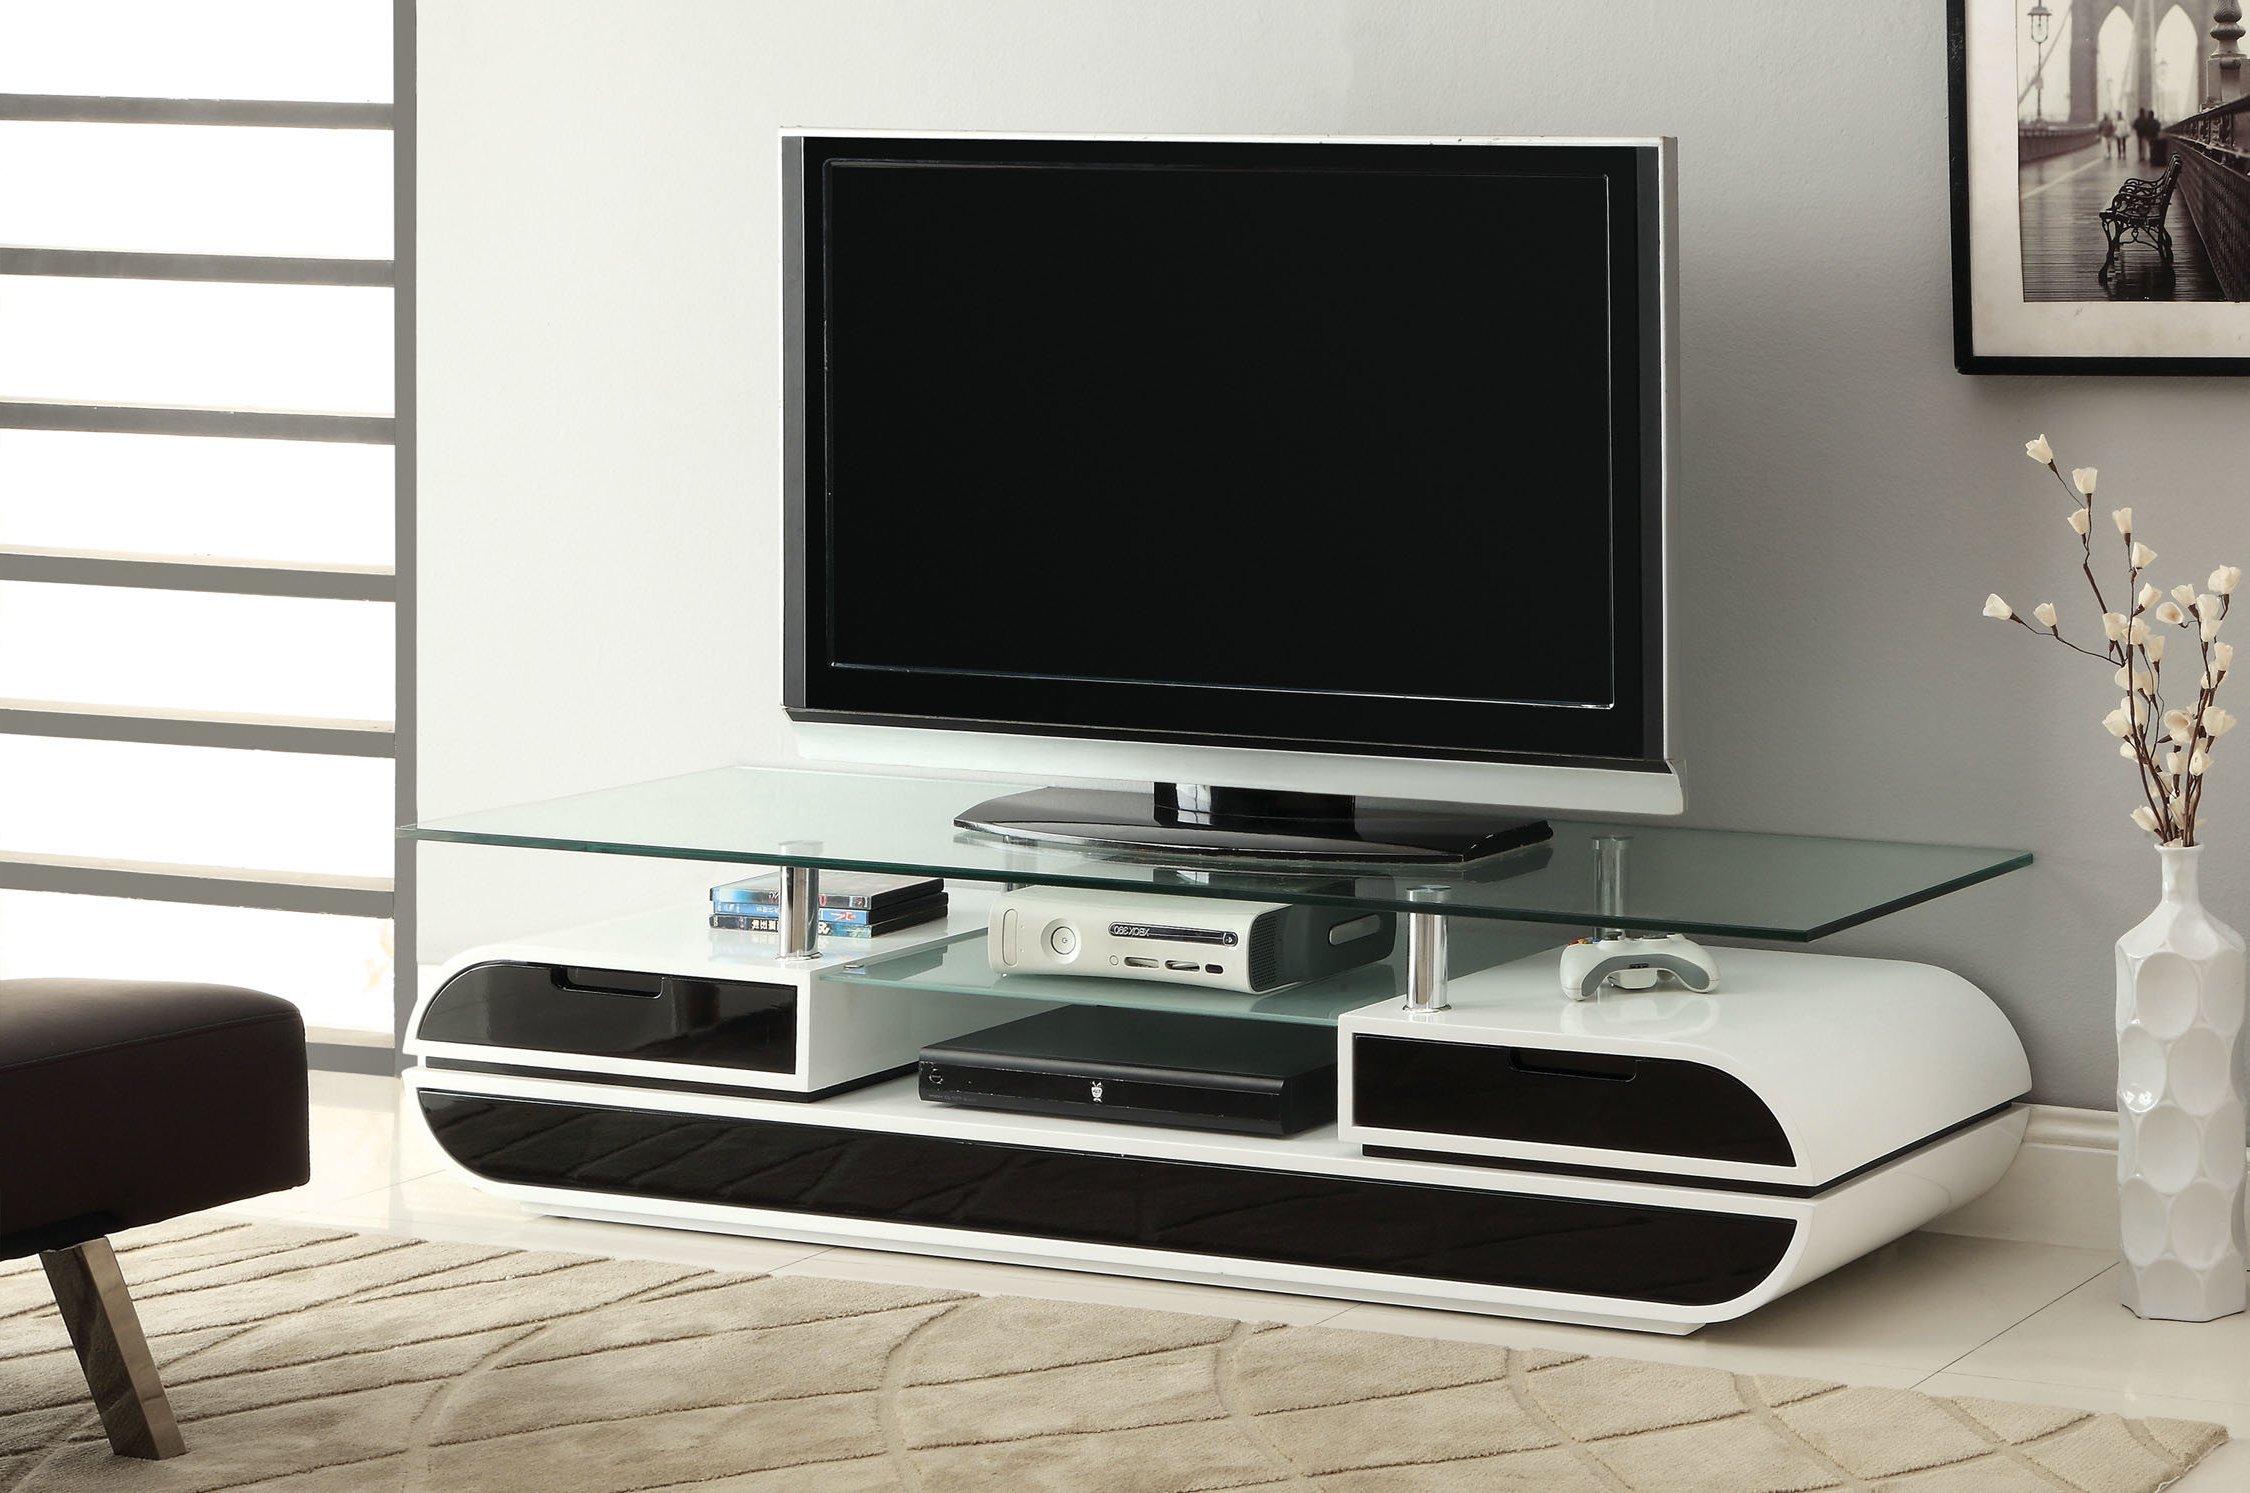 "Widely Used Hokku Tv Stands With Regard To Hokku Designs Ethan Tv Stand For Tvs Up To 70"" & Reviews (View 20 of 20)"